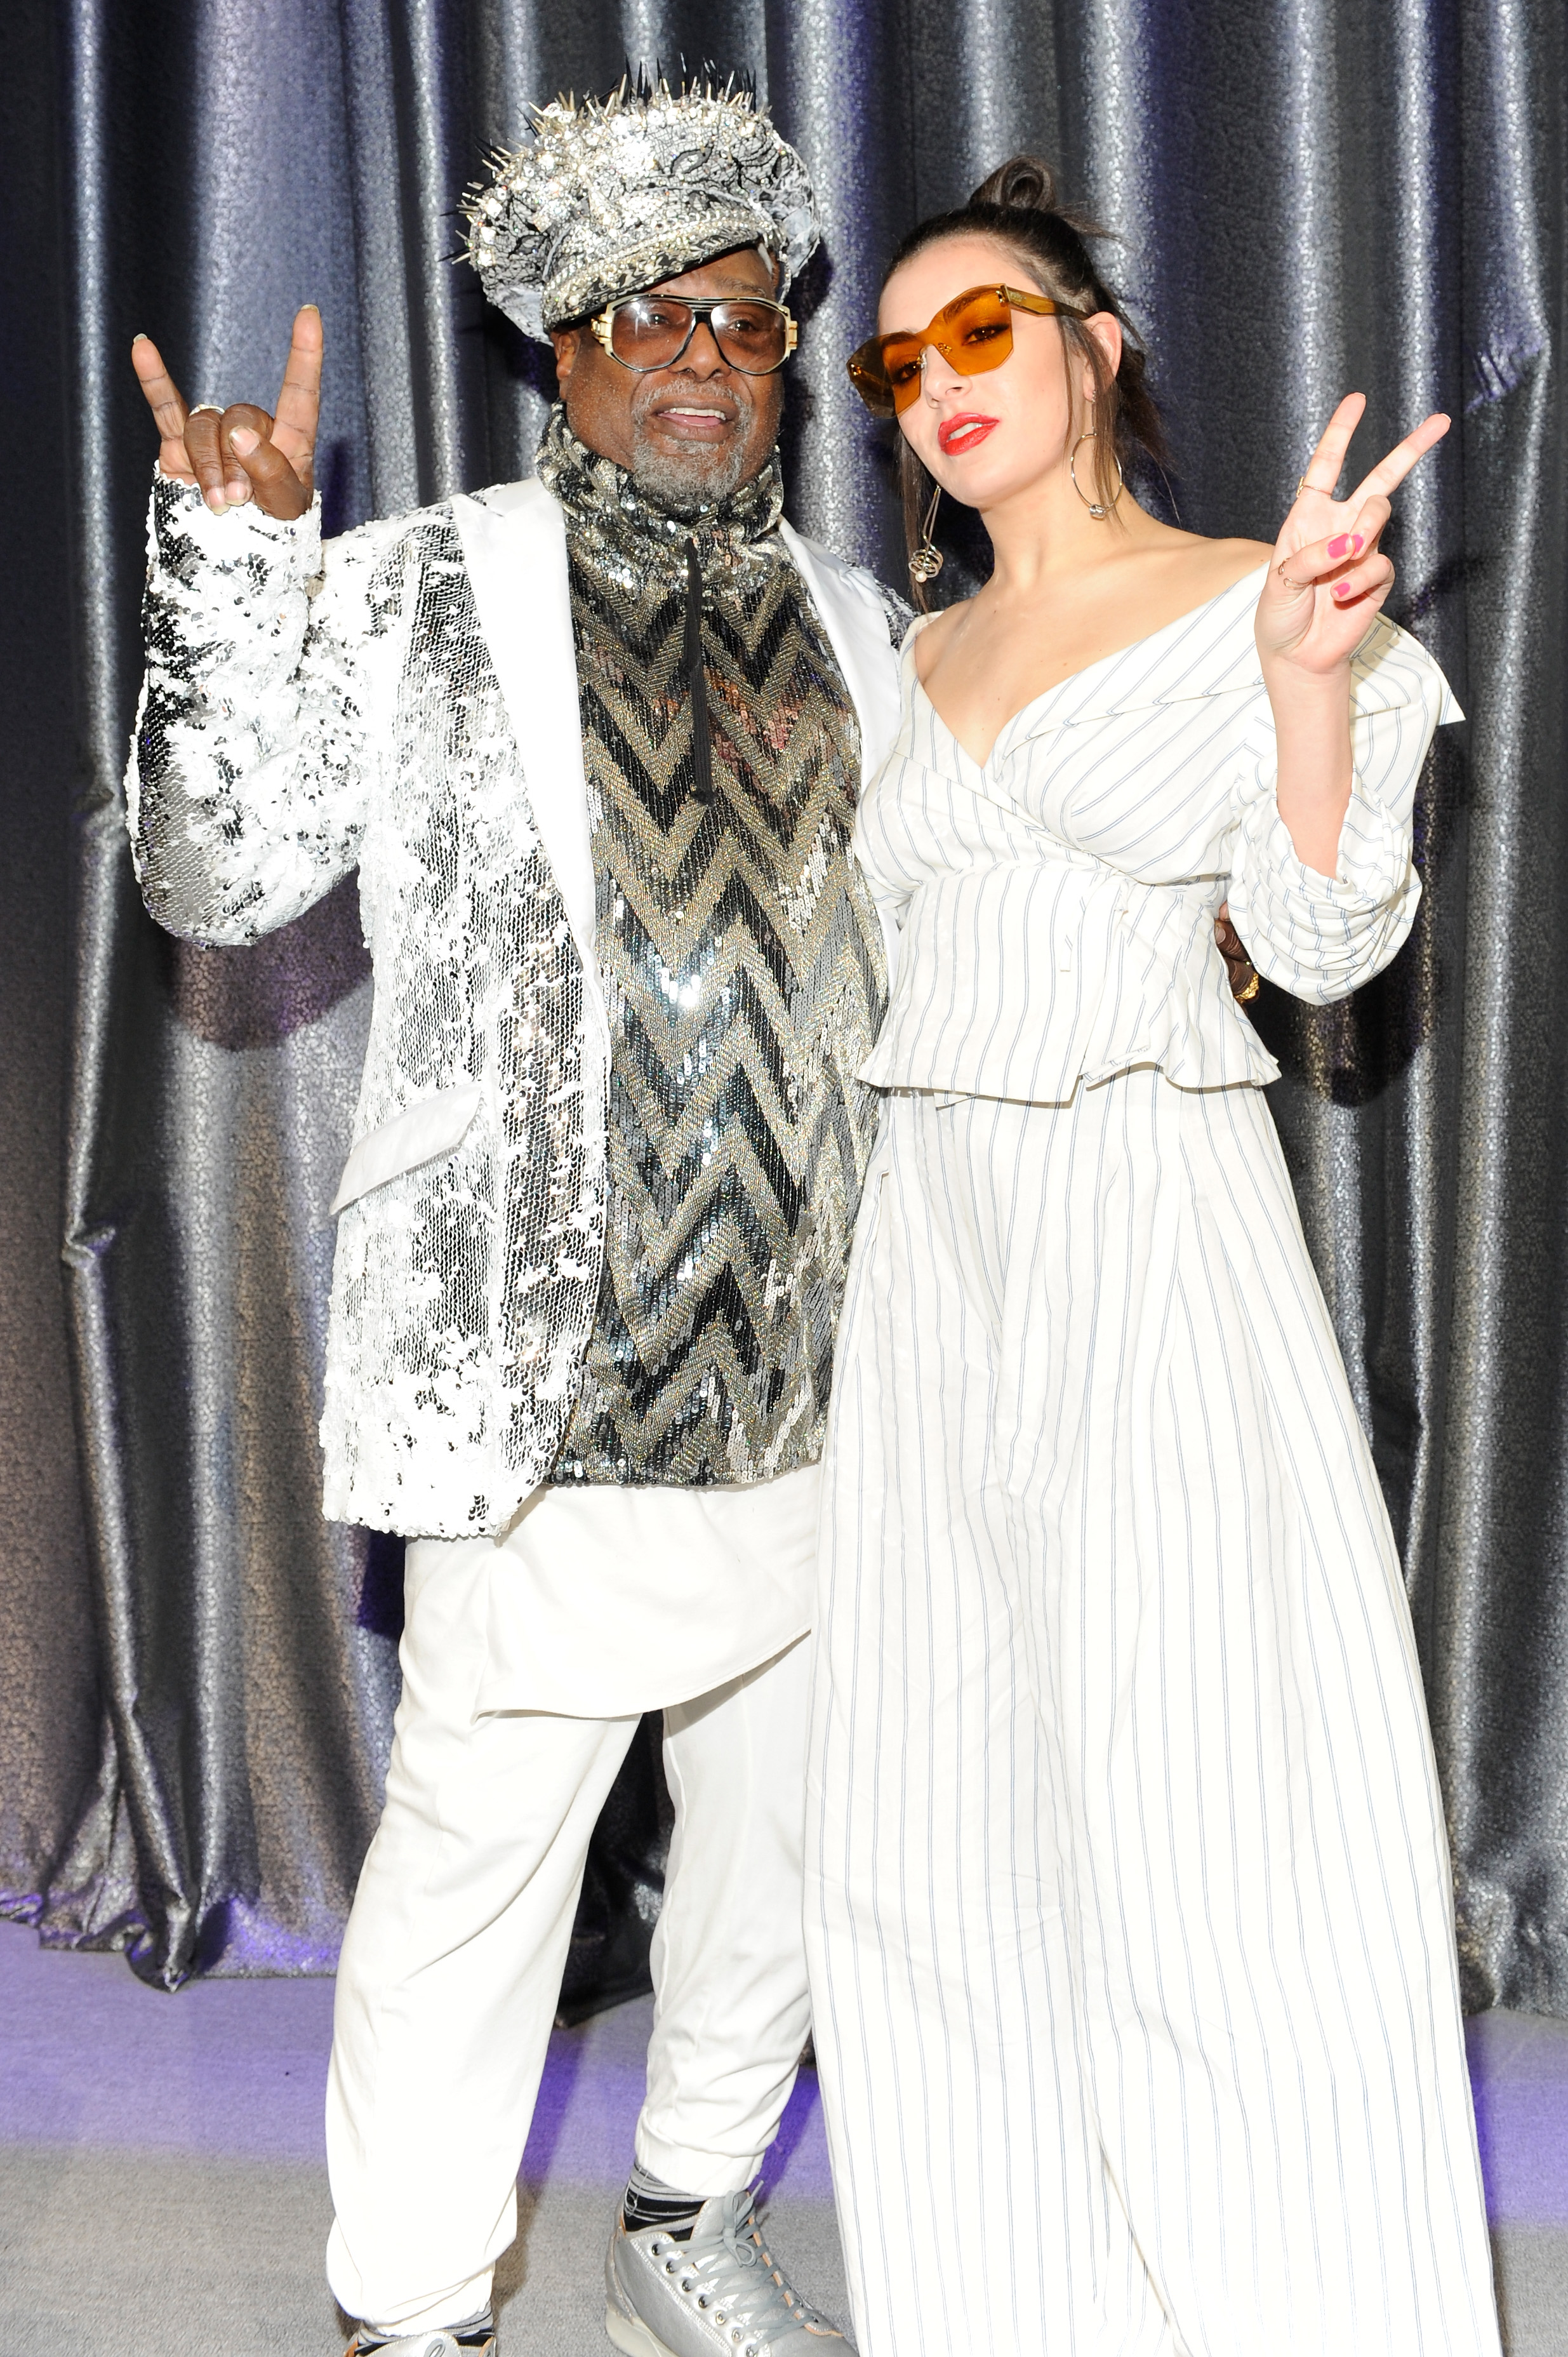 Singer/Songwriter George Clinton (L) and Singer-songwriter Charli XCX (Photo by Shawn Ehlers/Getty Images for SESAC)